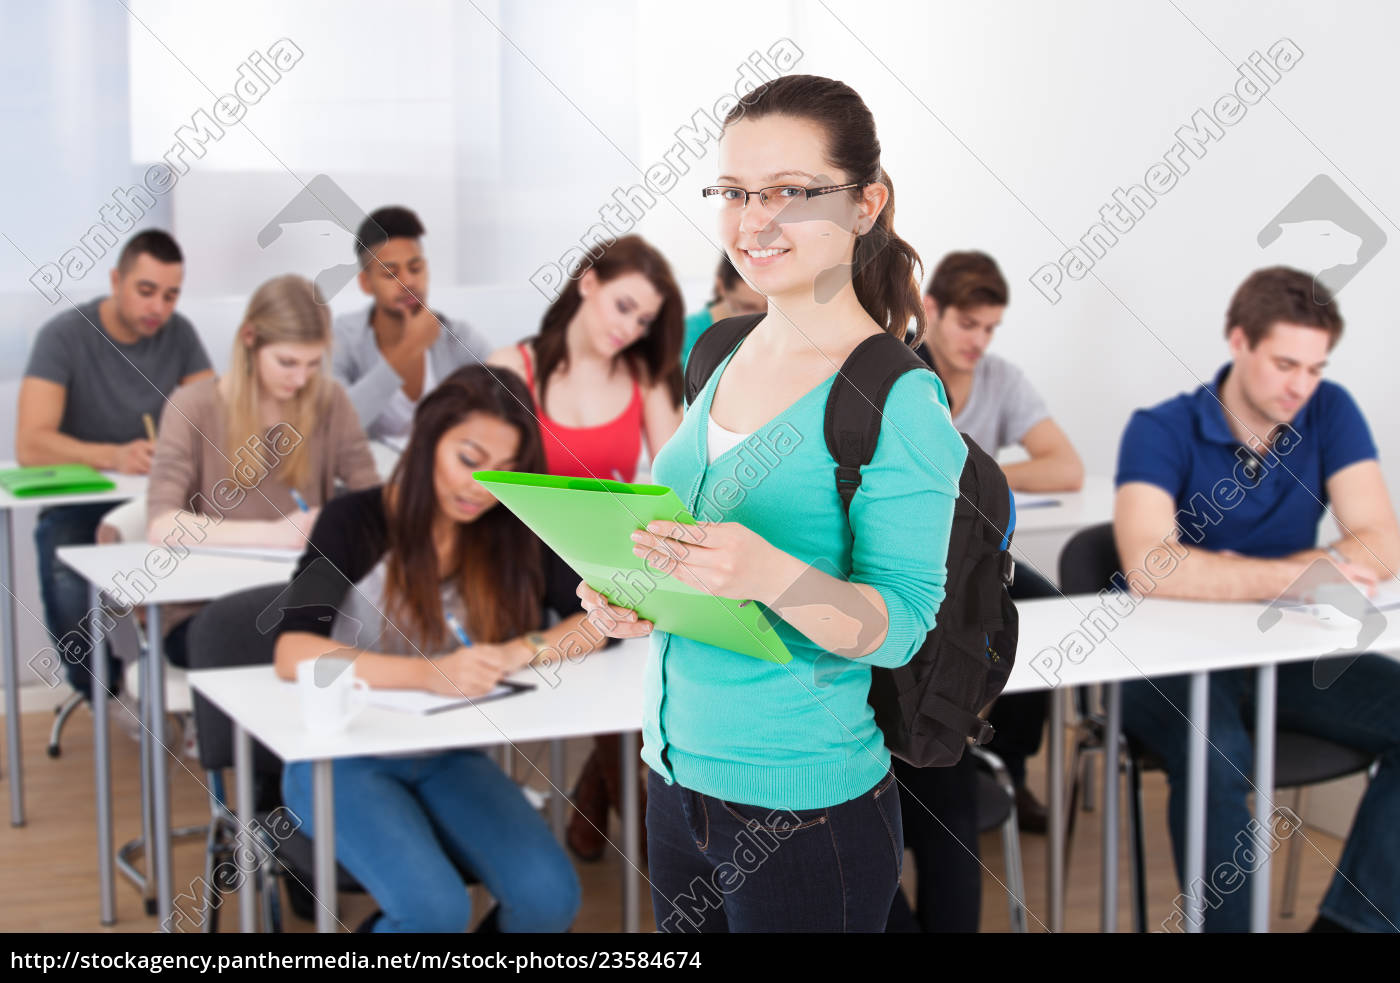 student, holding, file, against, white, background - 23584674